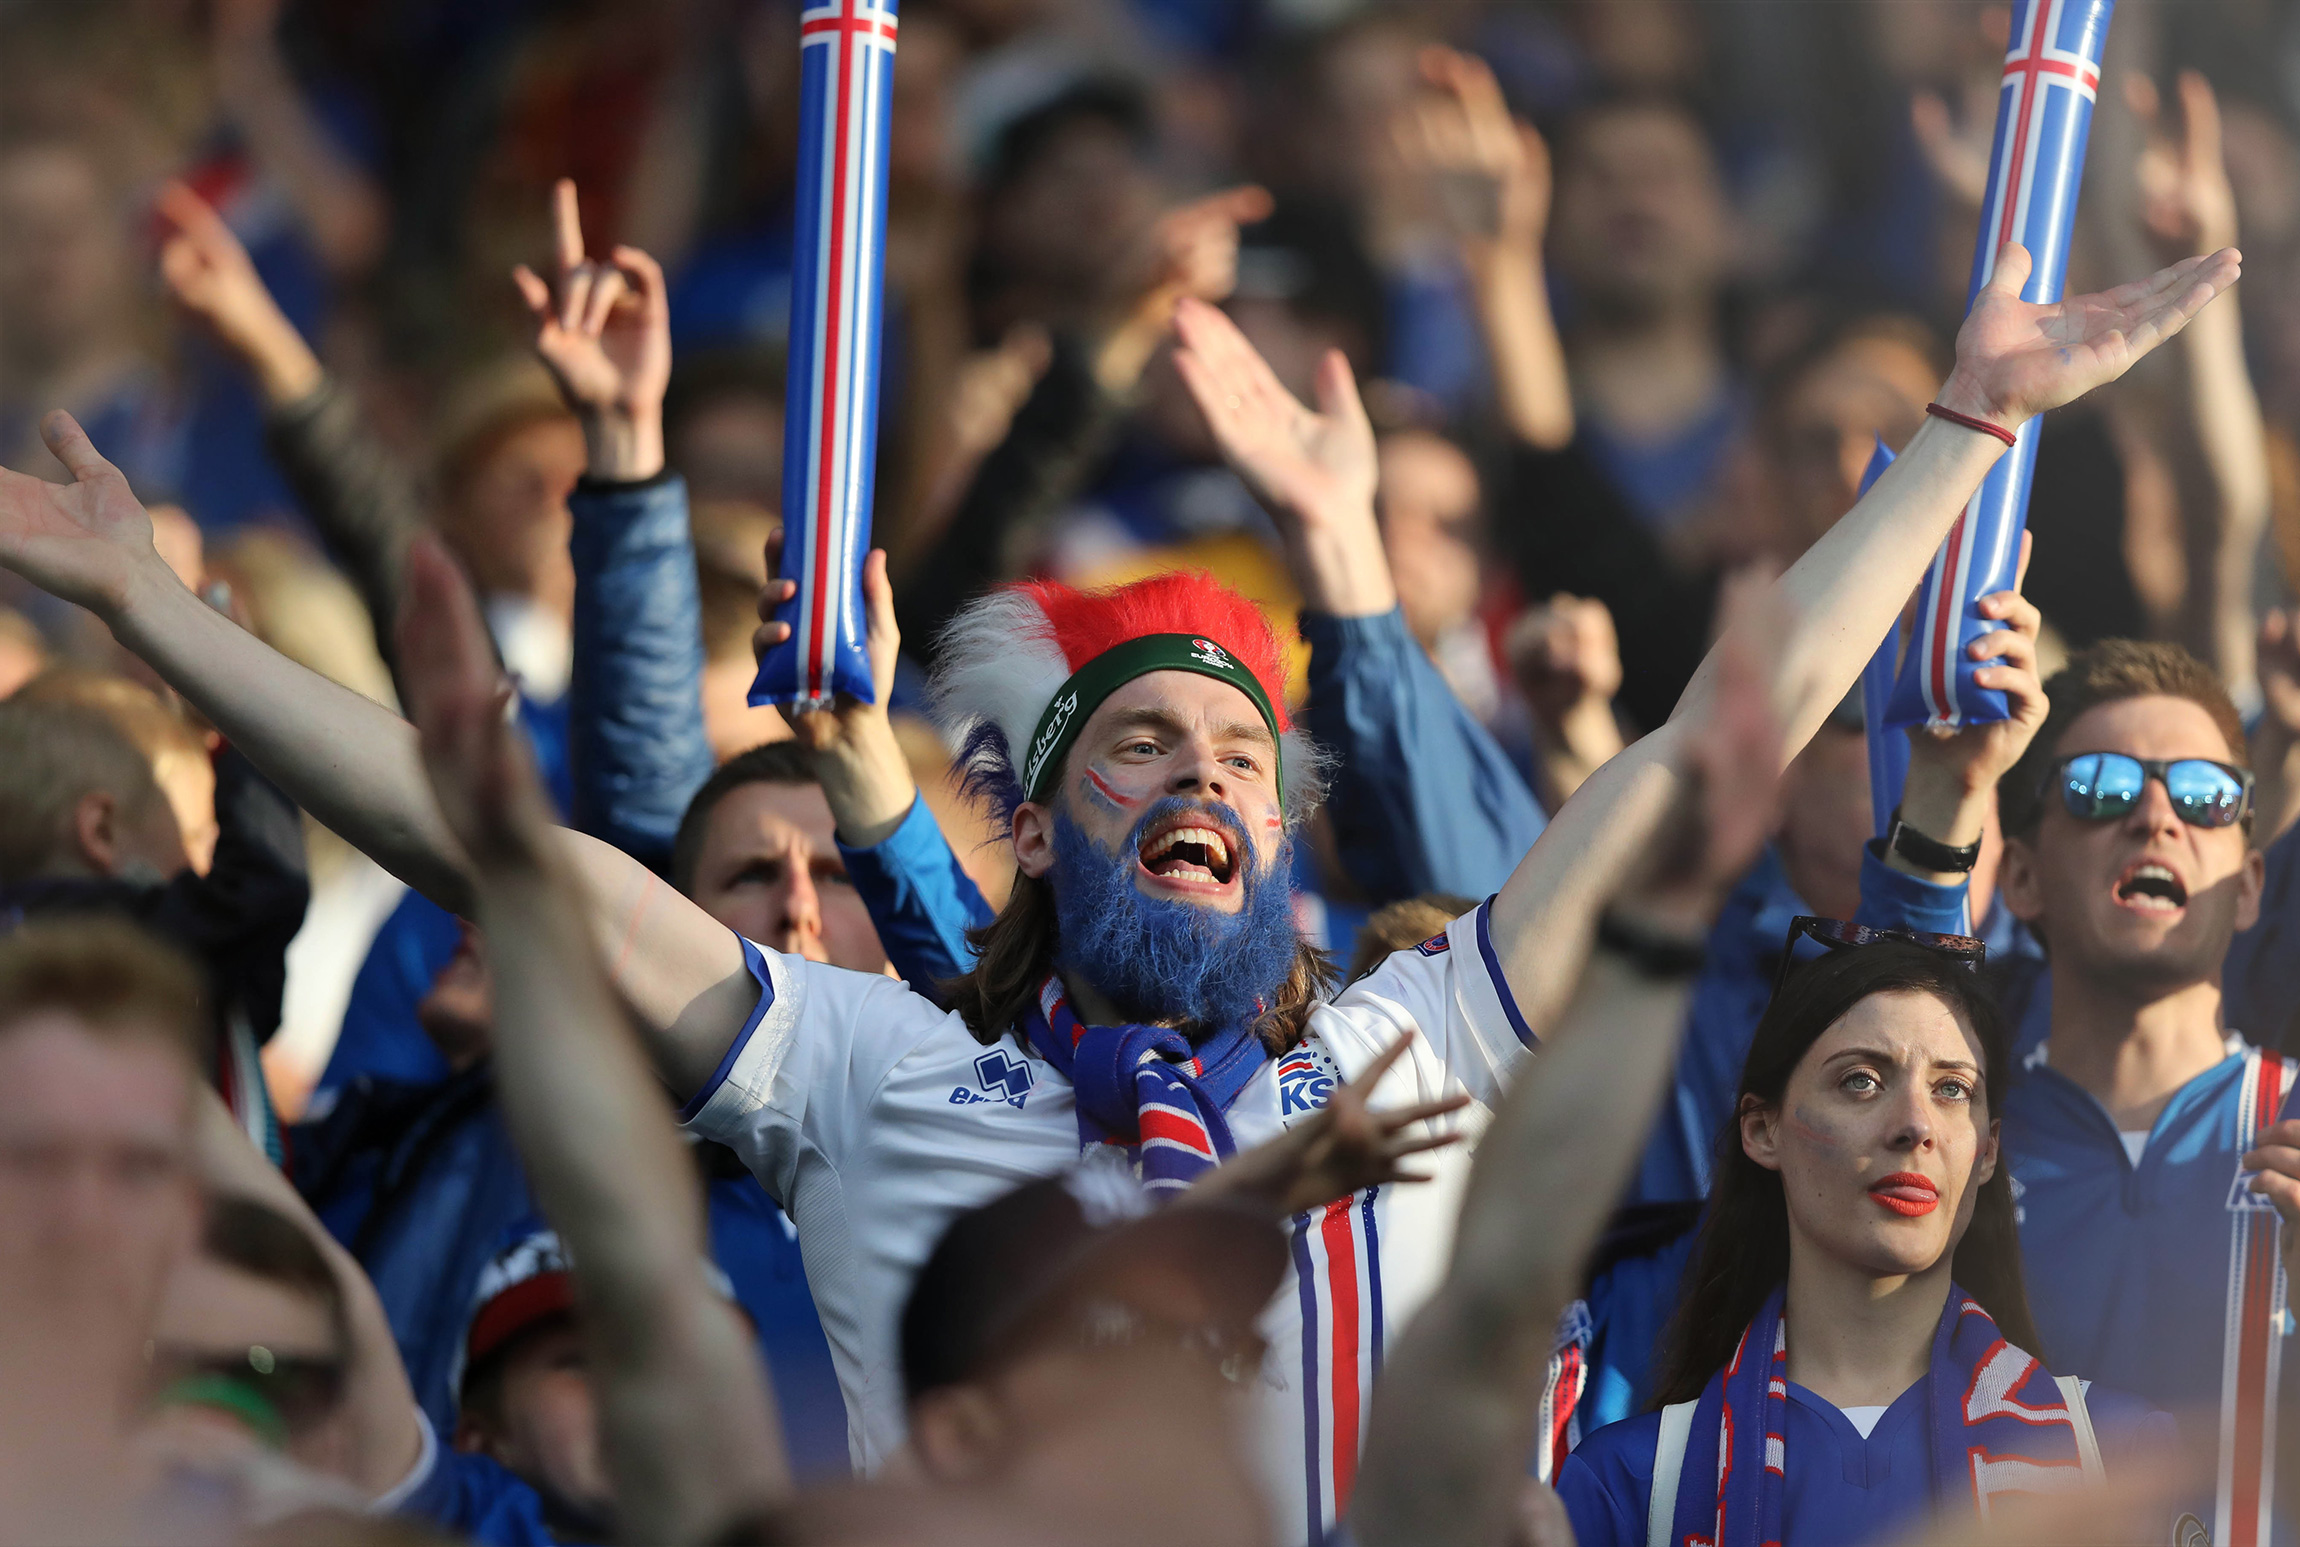 Iceland were a true highlight of the European Championships 2016 in France